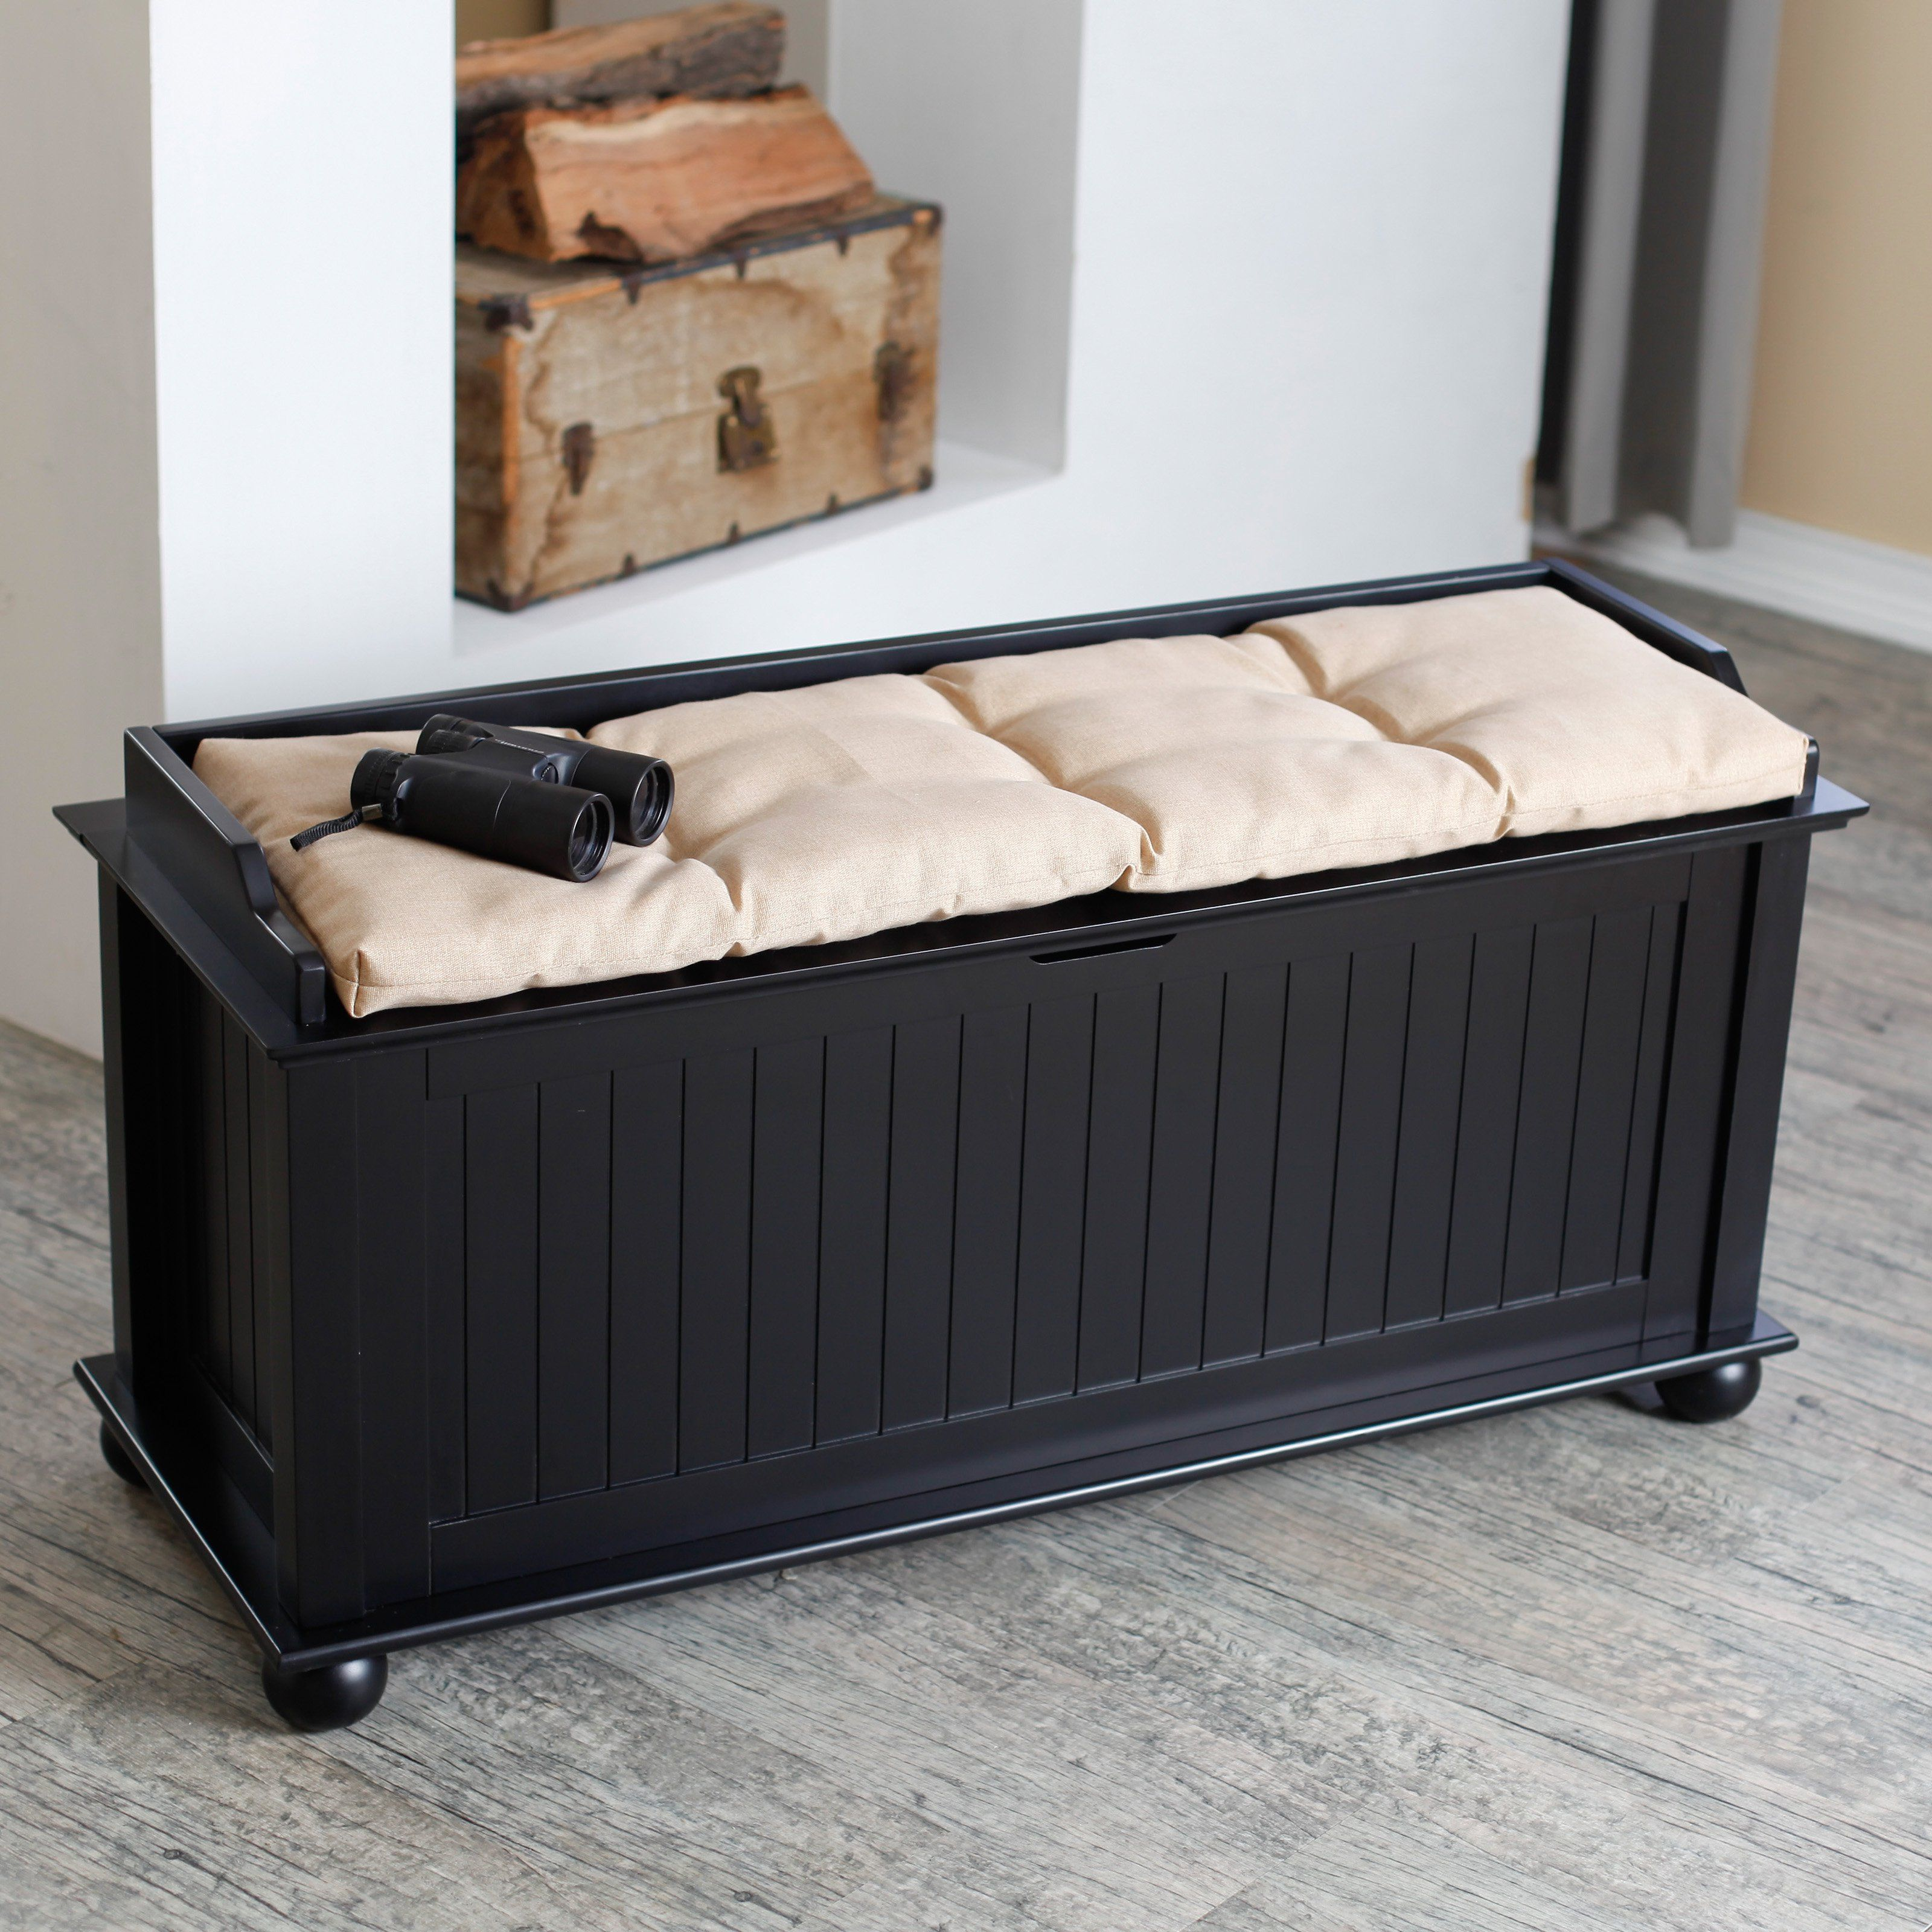 Beau Belham Living Morgan Traditional Flip Top Indoor Storage Bench With  Optional Bench Cushion | From Hayneedle.com